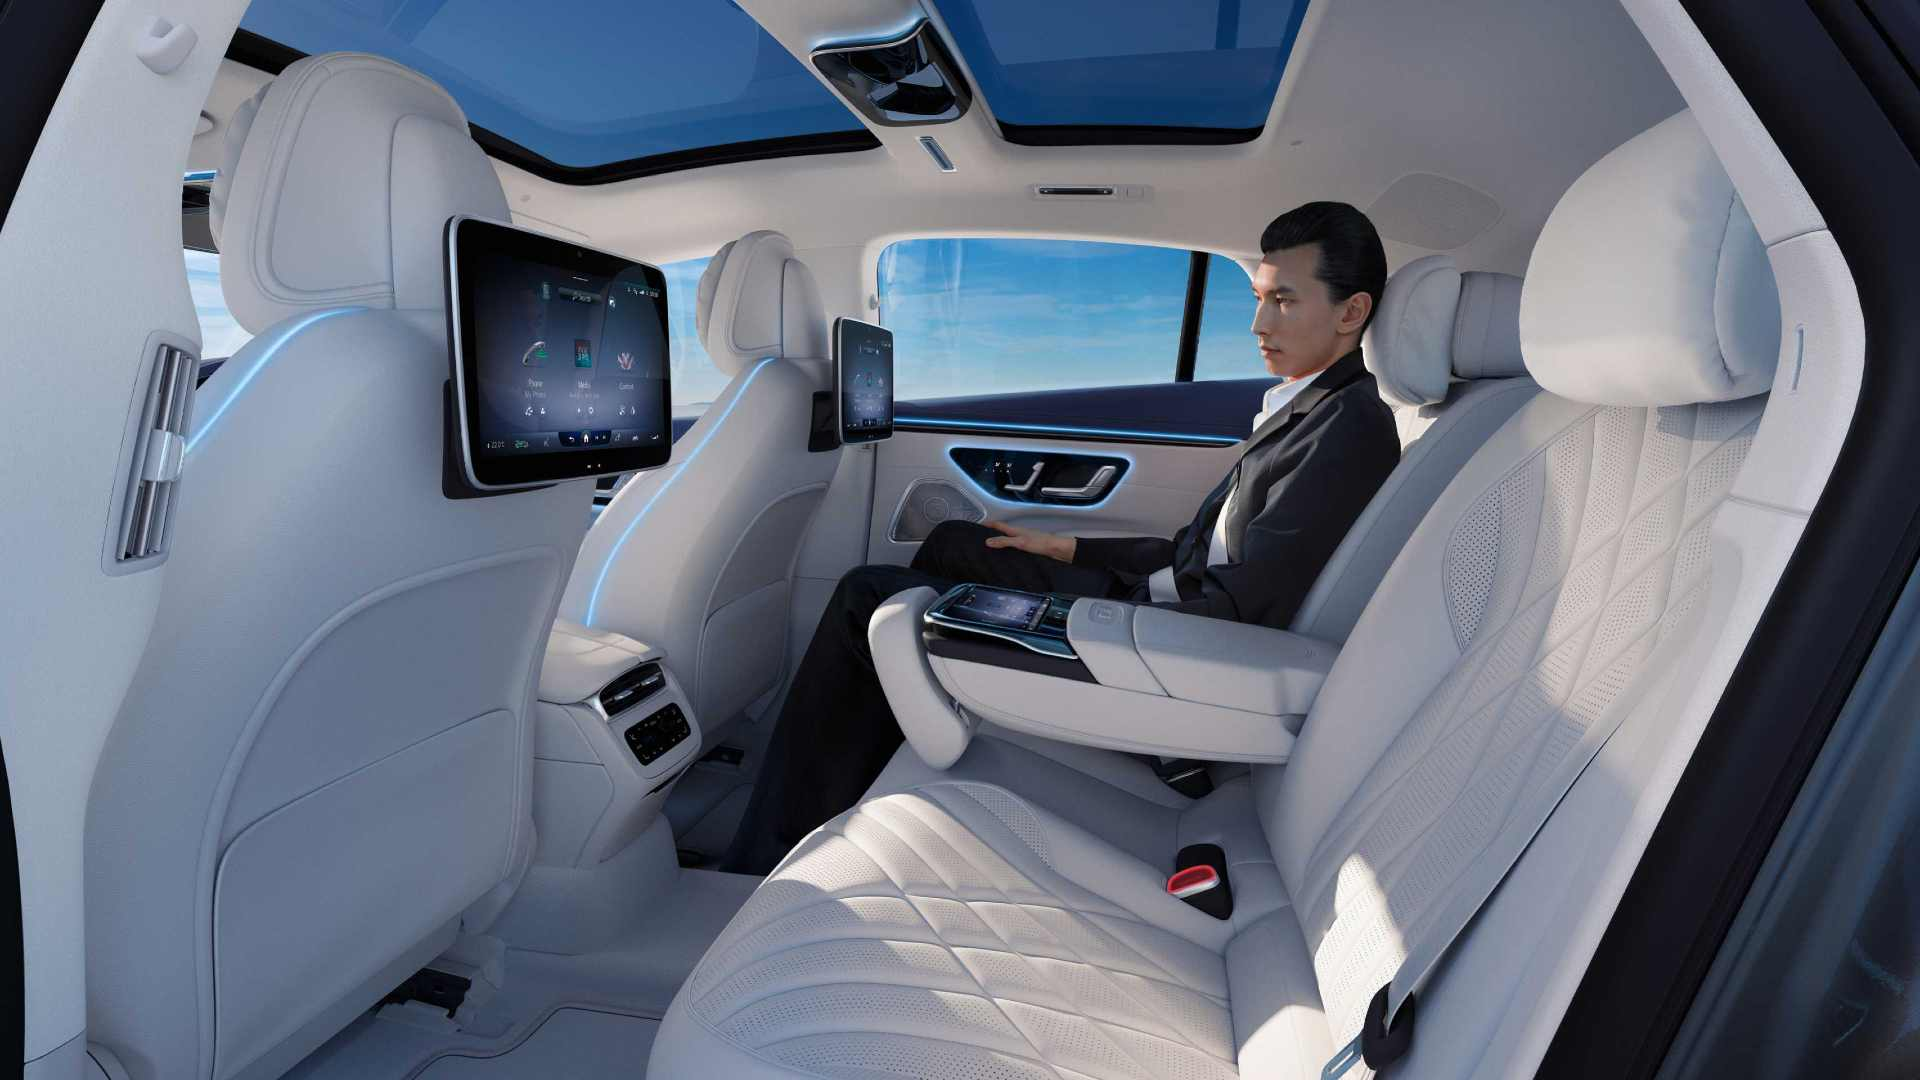 The Mercedes-Benz EQS is said to have even more rear seat space than the S-Class. Image: Mercedes-Benz